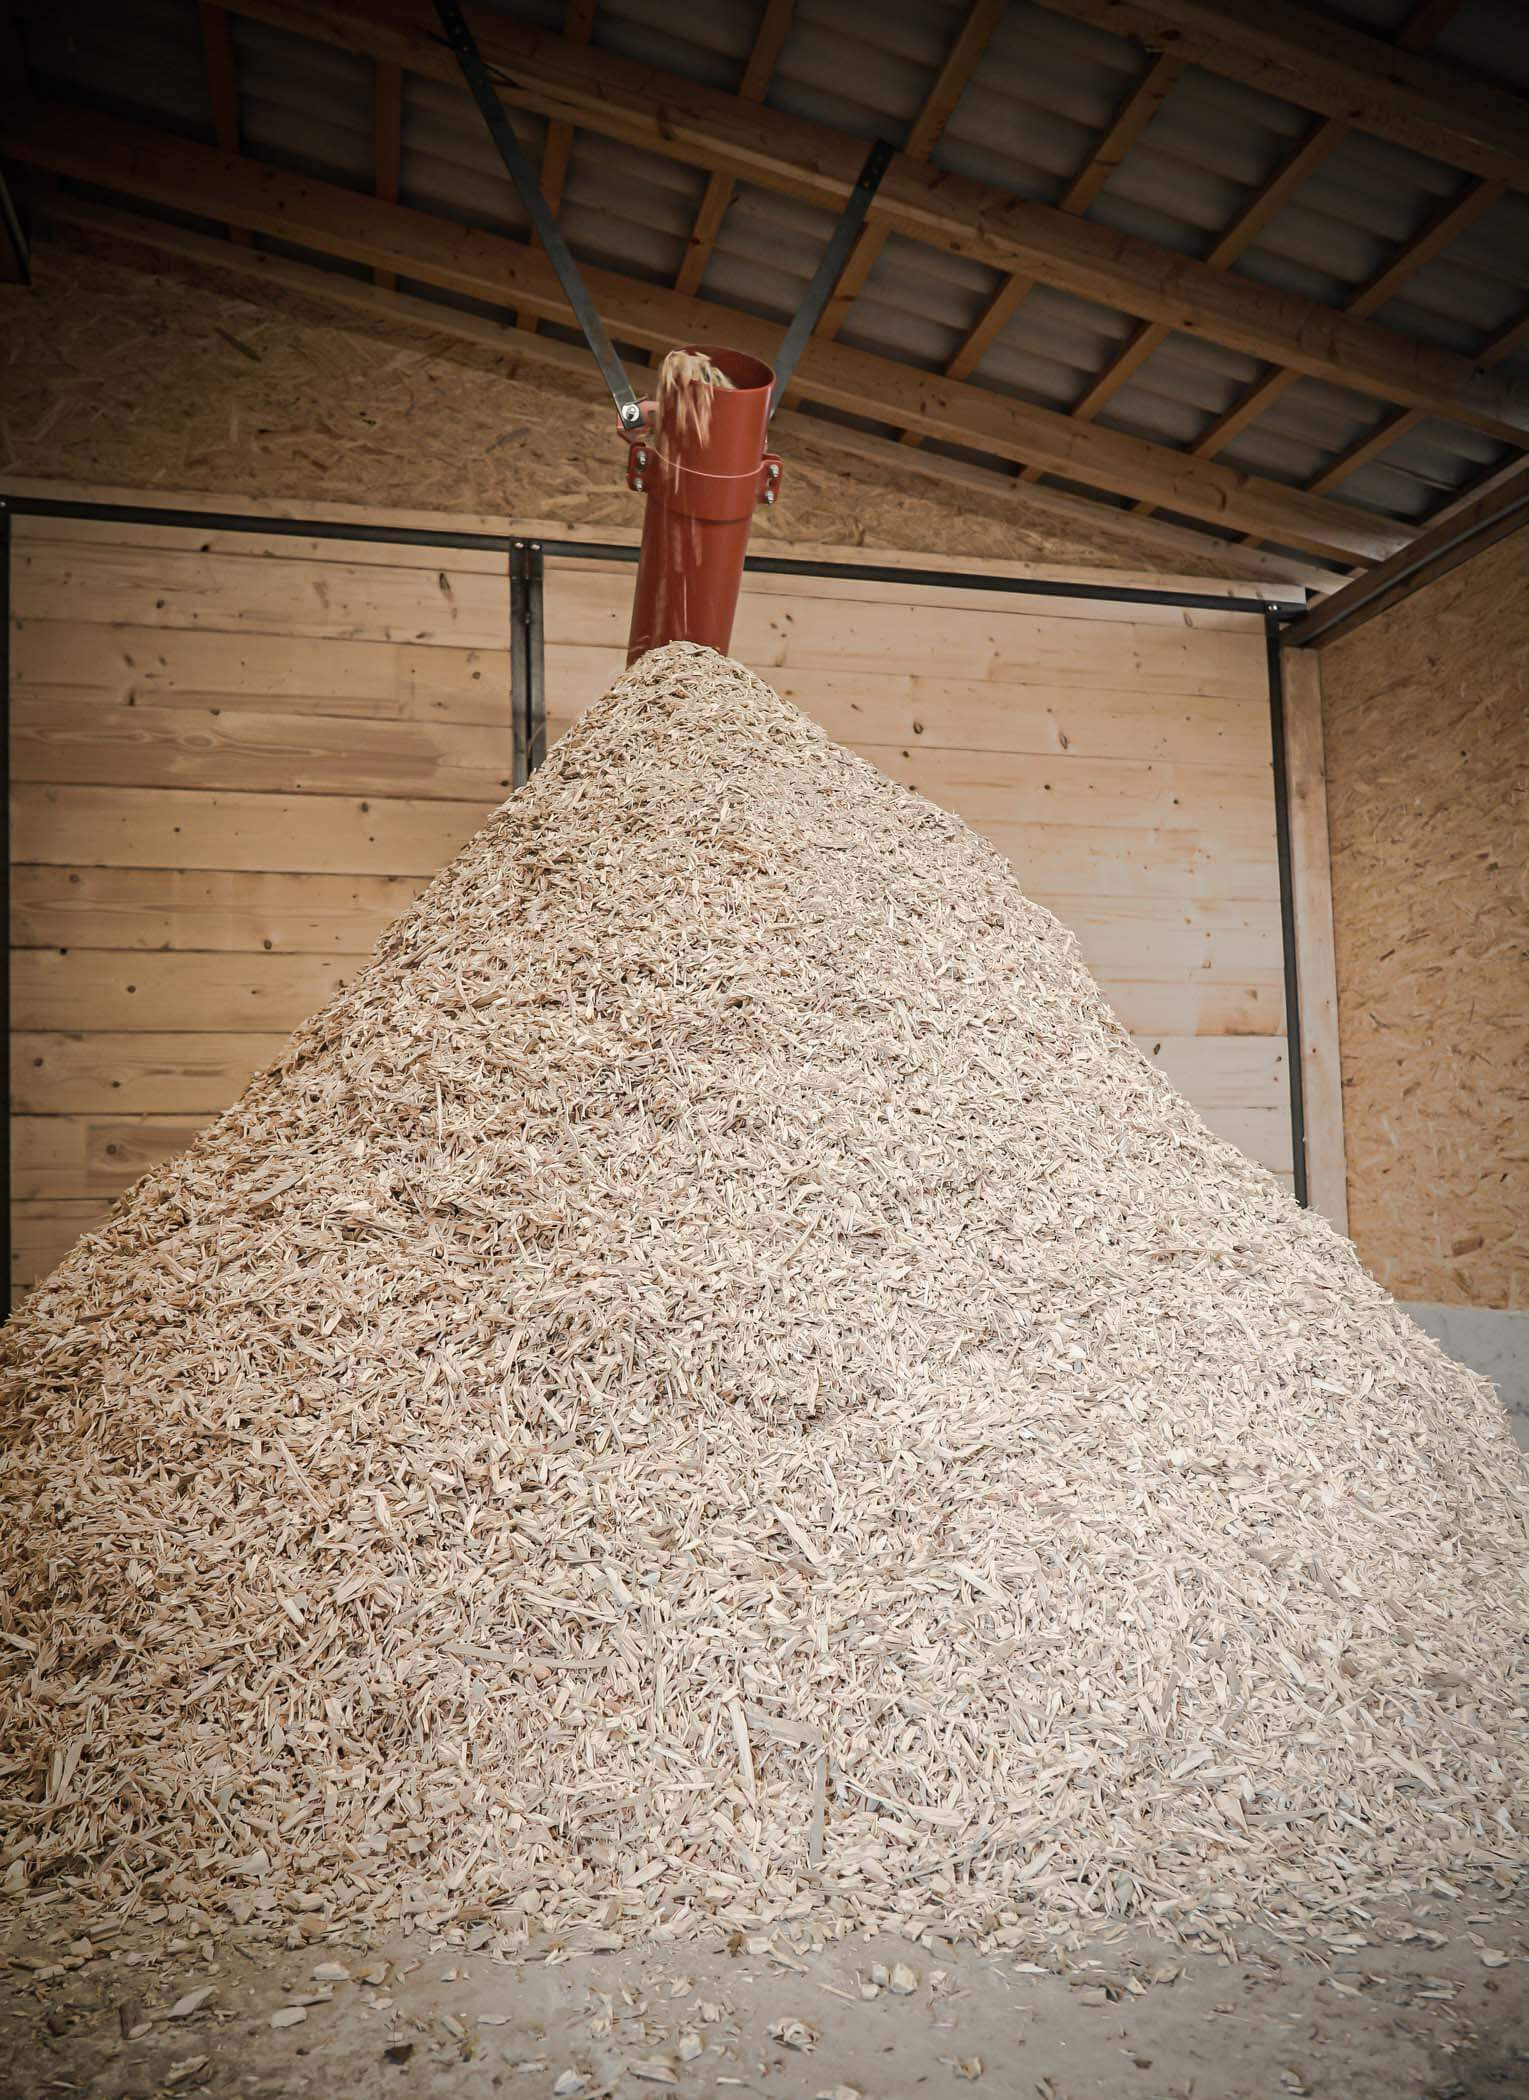 Chip bunker with screw conveyor and heap with wood chips